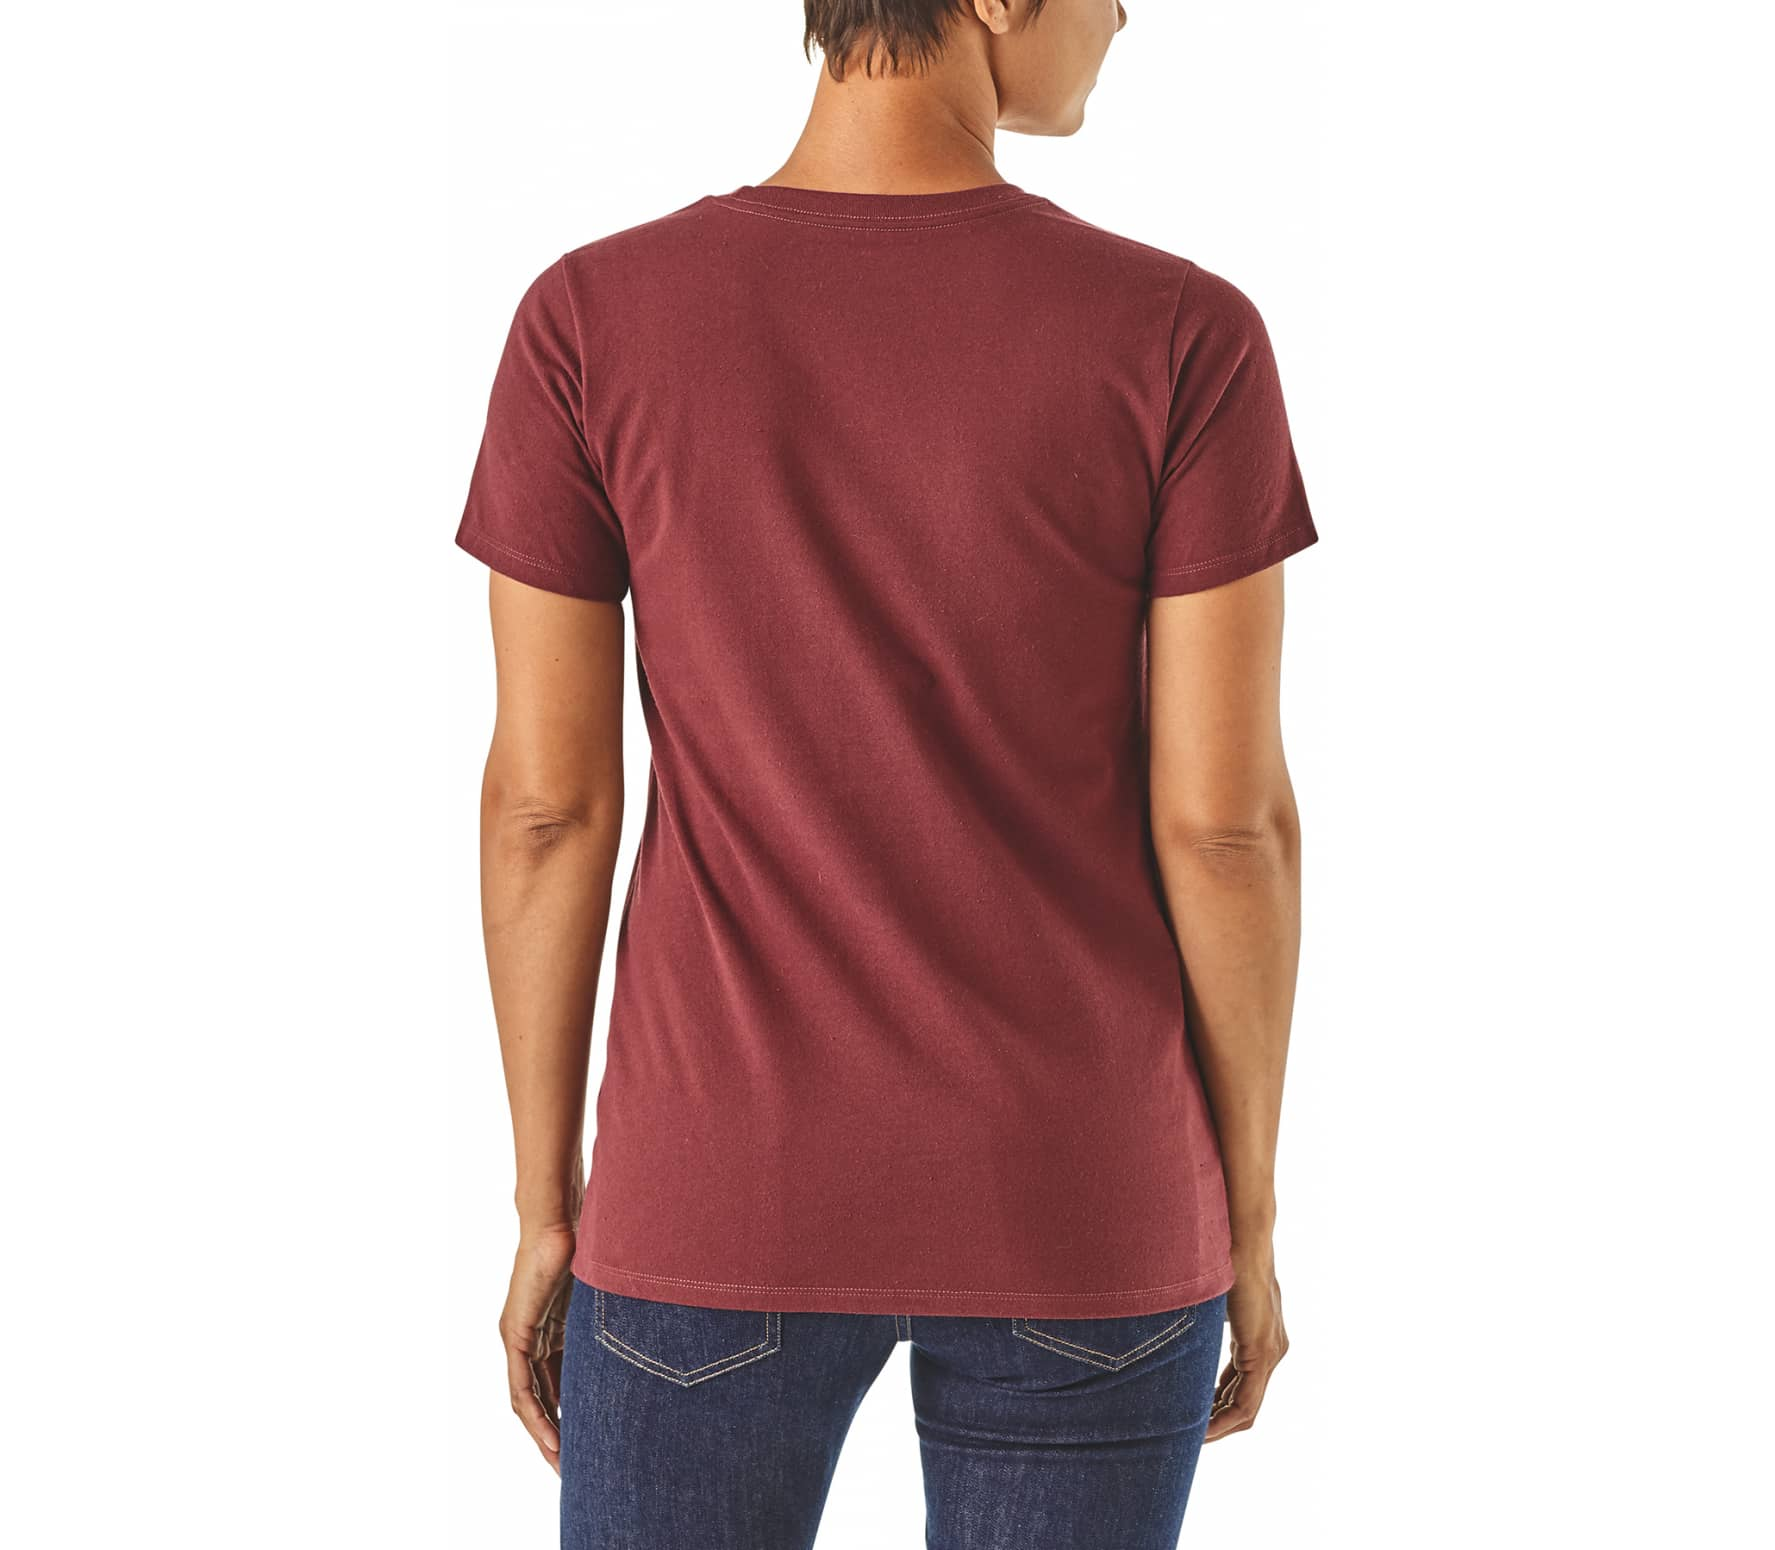 Patagonia - Live Simply Trailer Responsibili women's t-shirt (red)